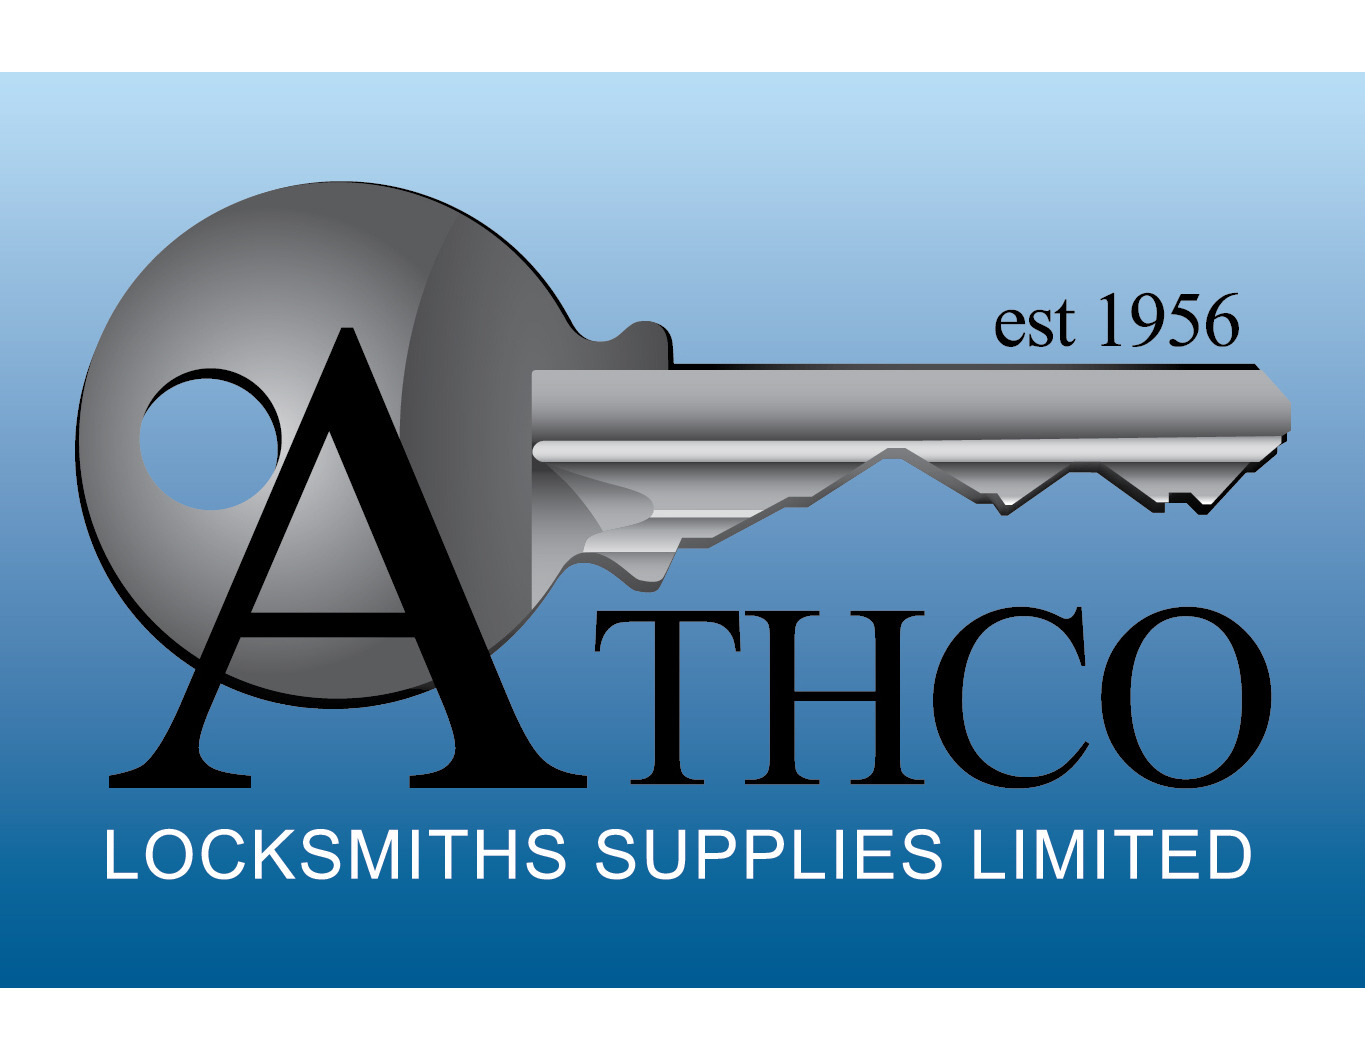 Athco Locksmiths Supplies Ltd